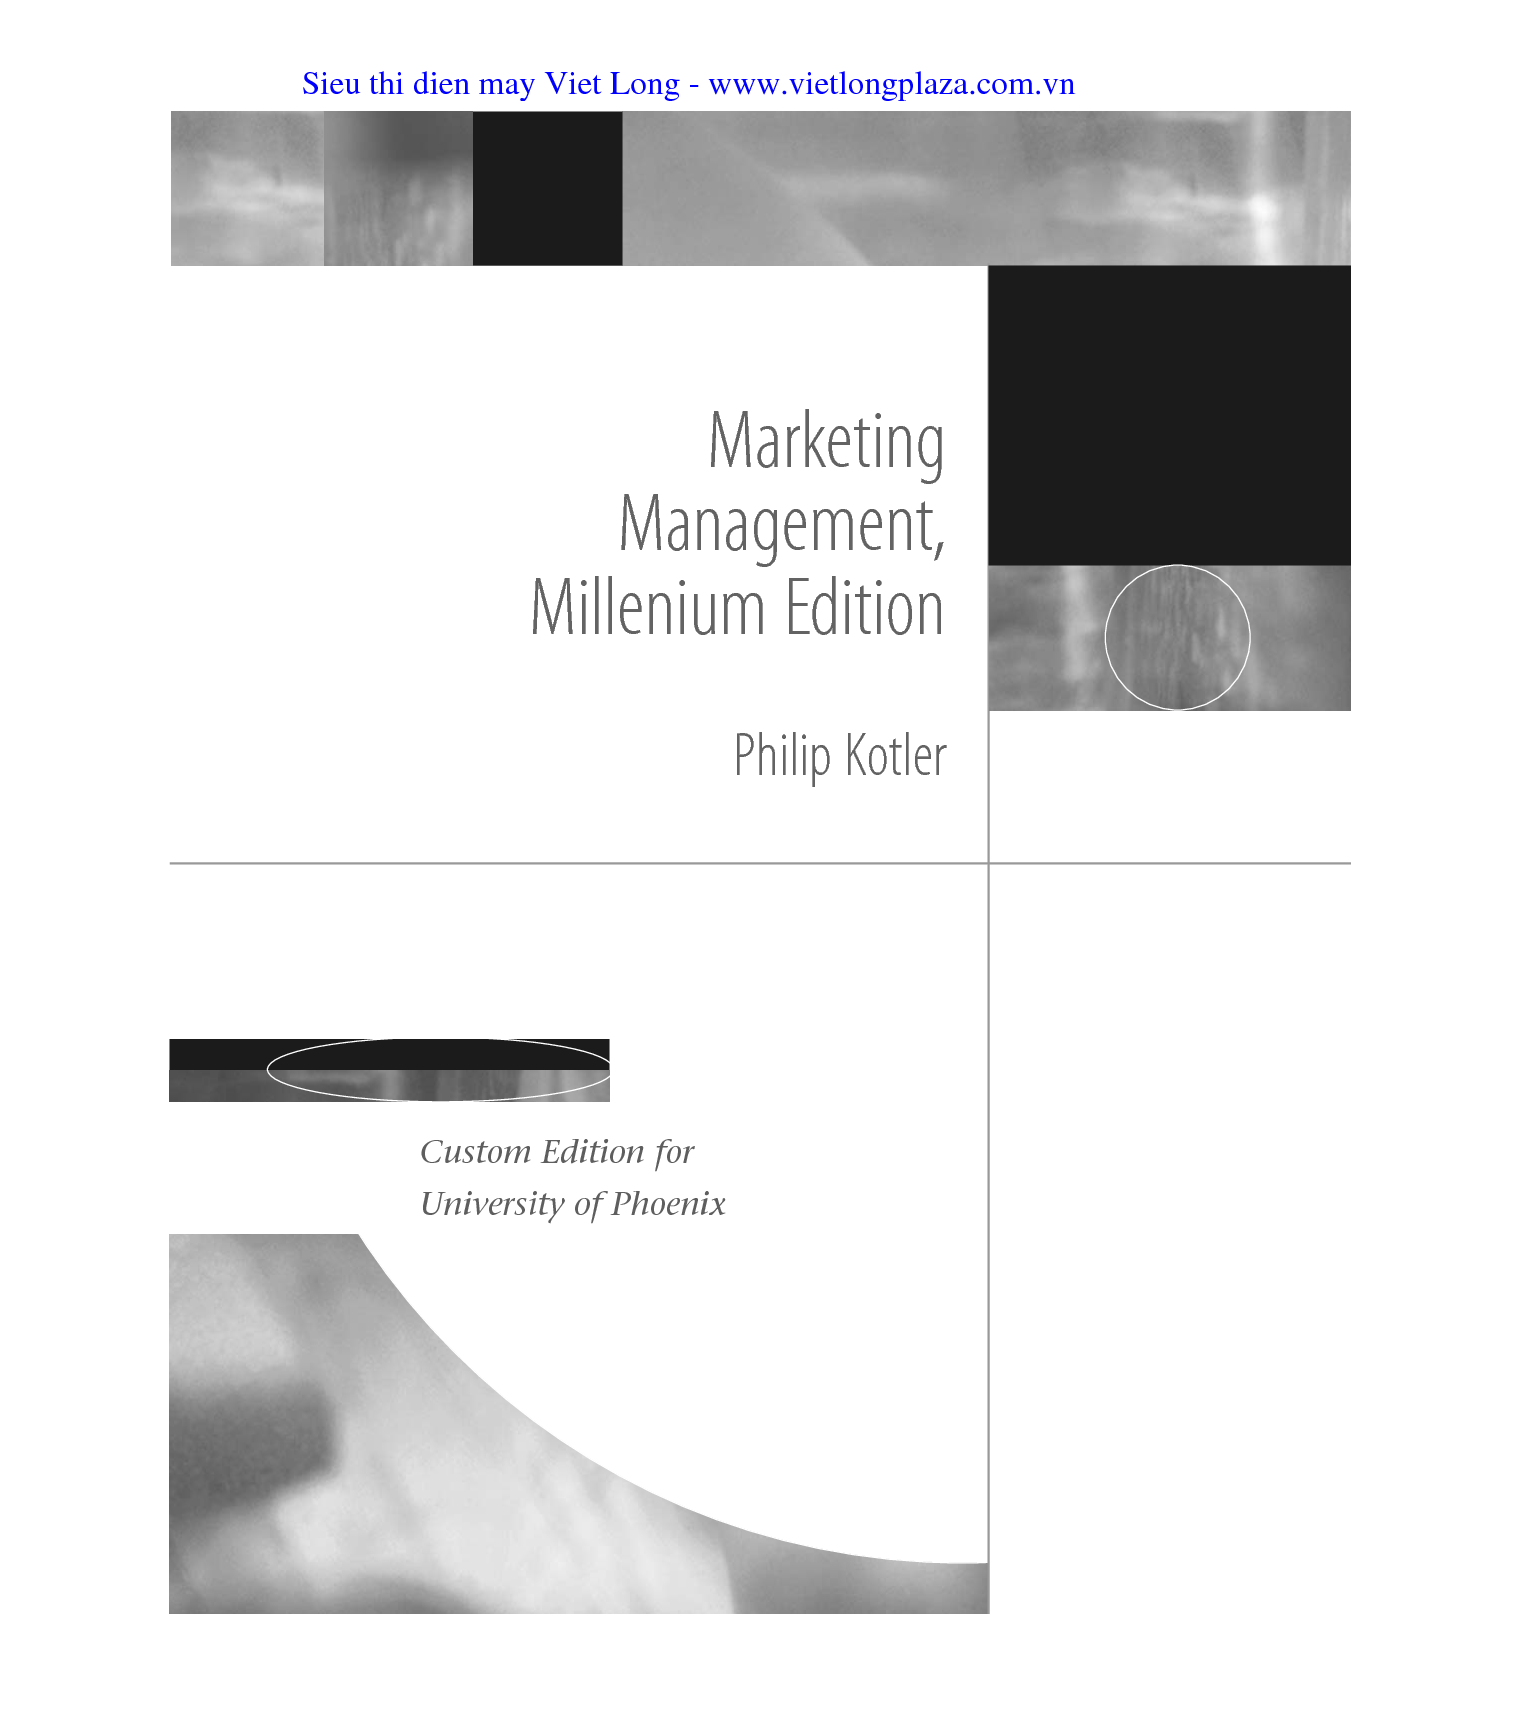 Marketing Management, Millenium Edition